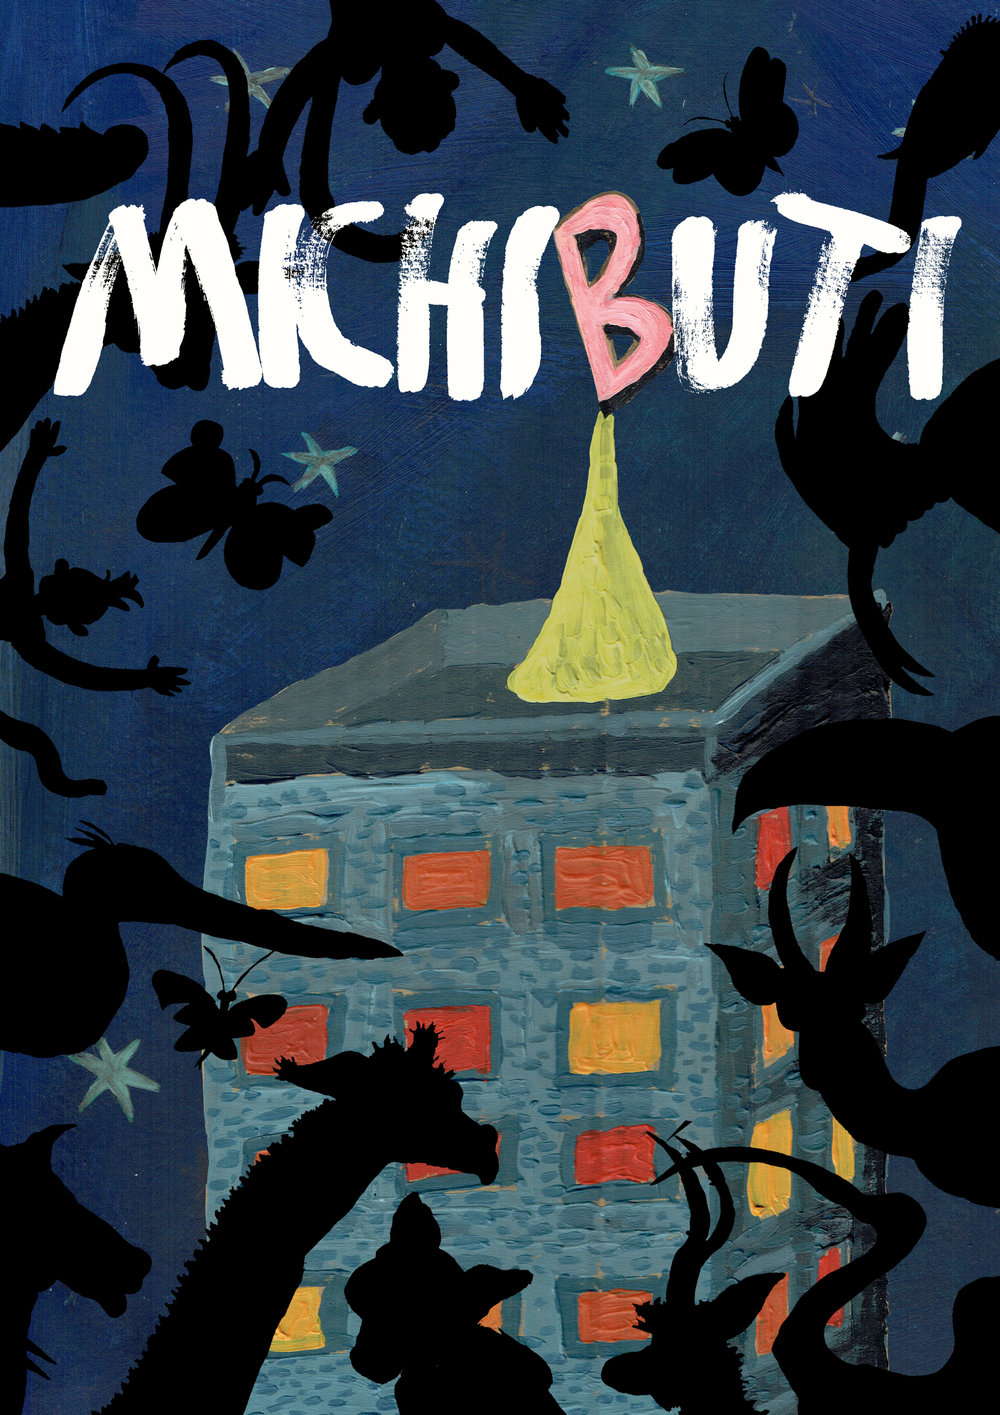 The front cover of  Michibuti  shows Blobfish Tower - that's why there's a big pink B - where Ted lives.